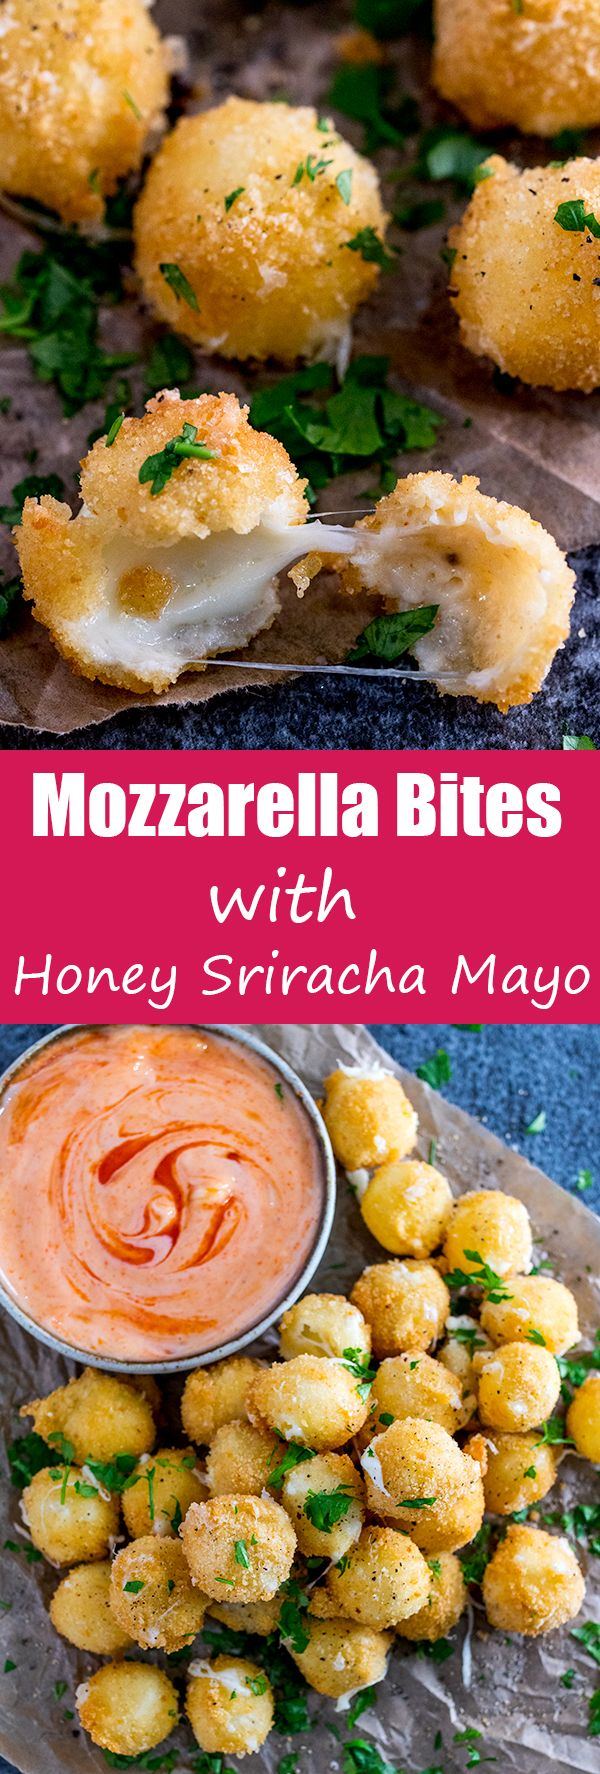 Make these Crispy Mozzarella Bites with honey sriracha mayo for parties, game day or an awesome snack time treat!Make these Crispy Mozzarella Bites with honey sriracha mayo for parties, game day or an awesome snack time treat!